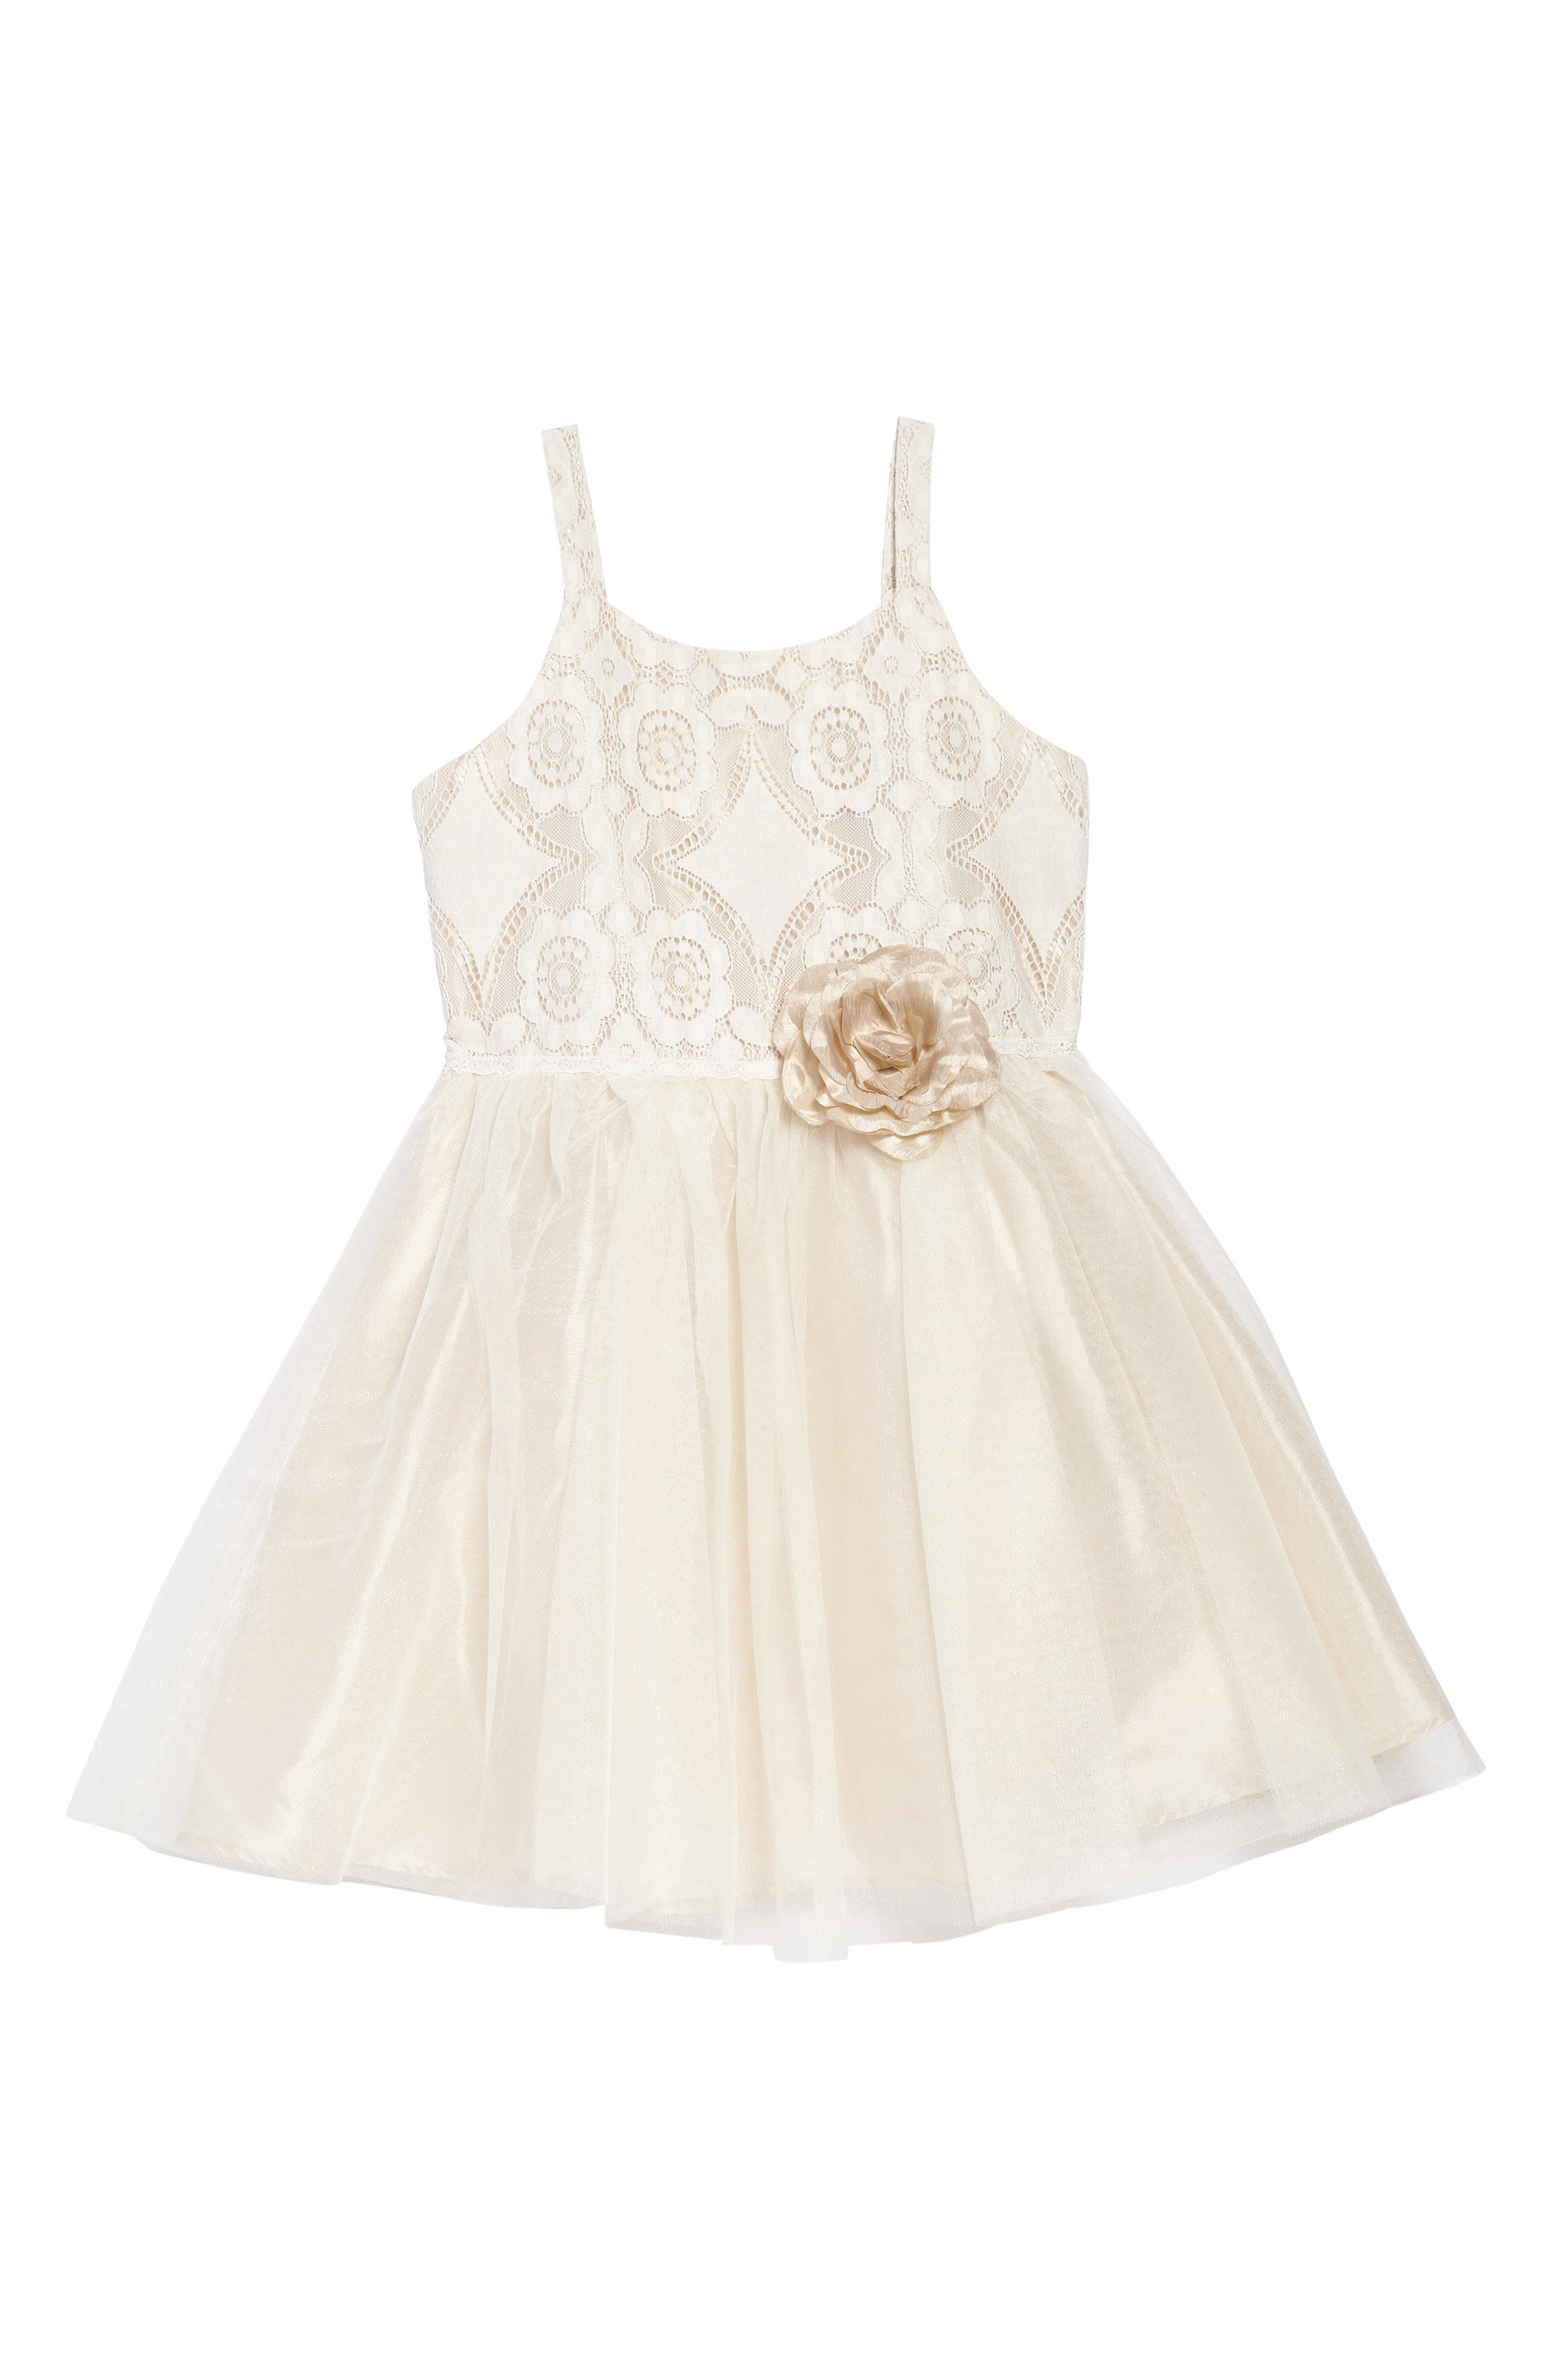 Lace & Tulle Party Dress,                             Main thumbnail 1, color,                             Ivory/ Tan